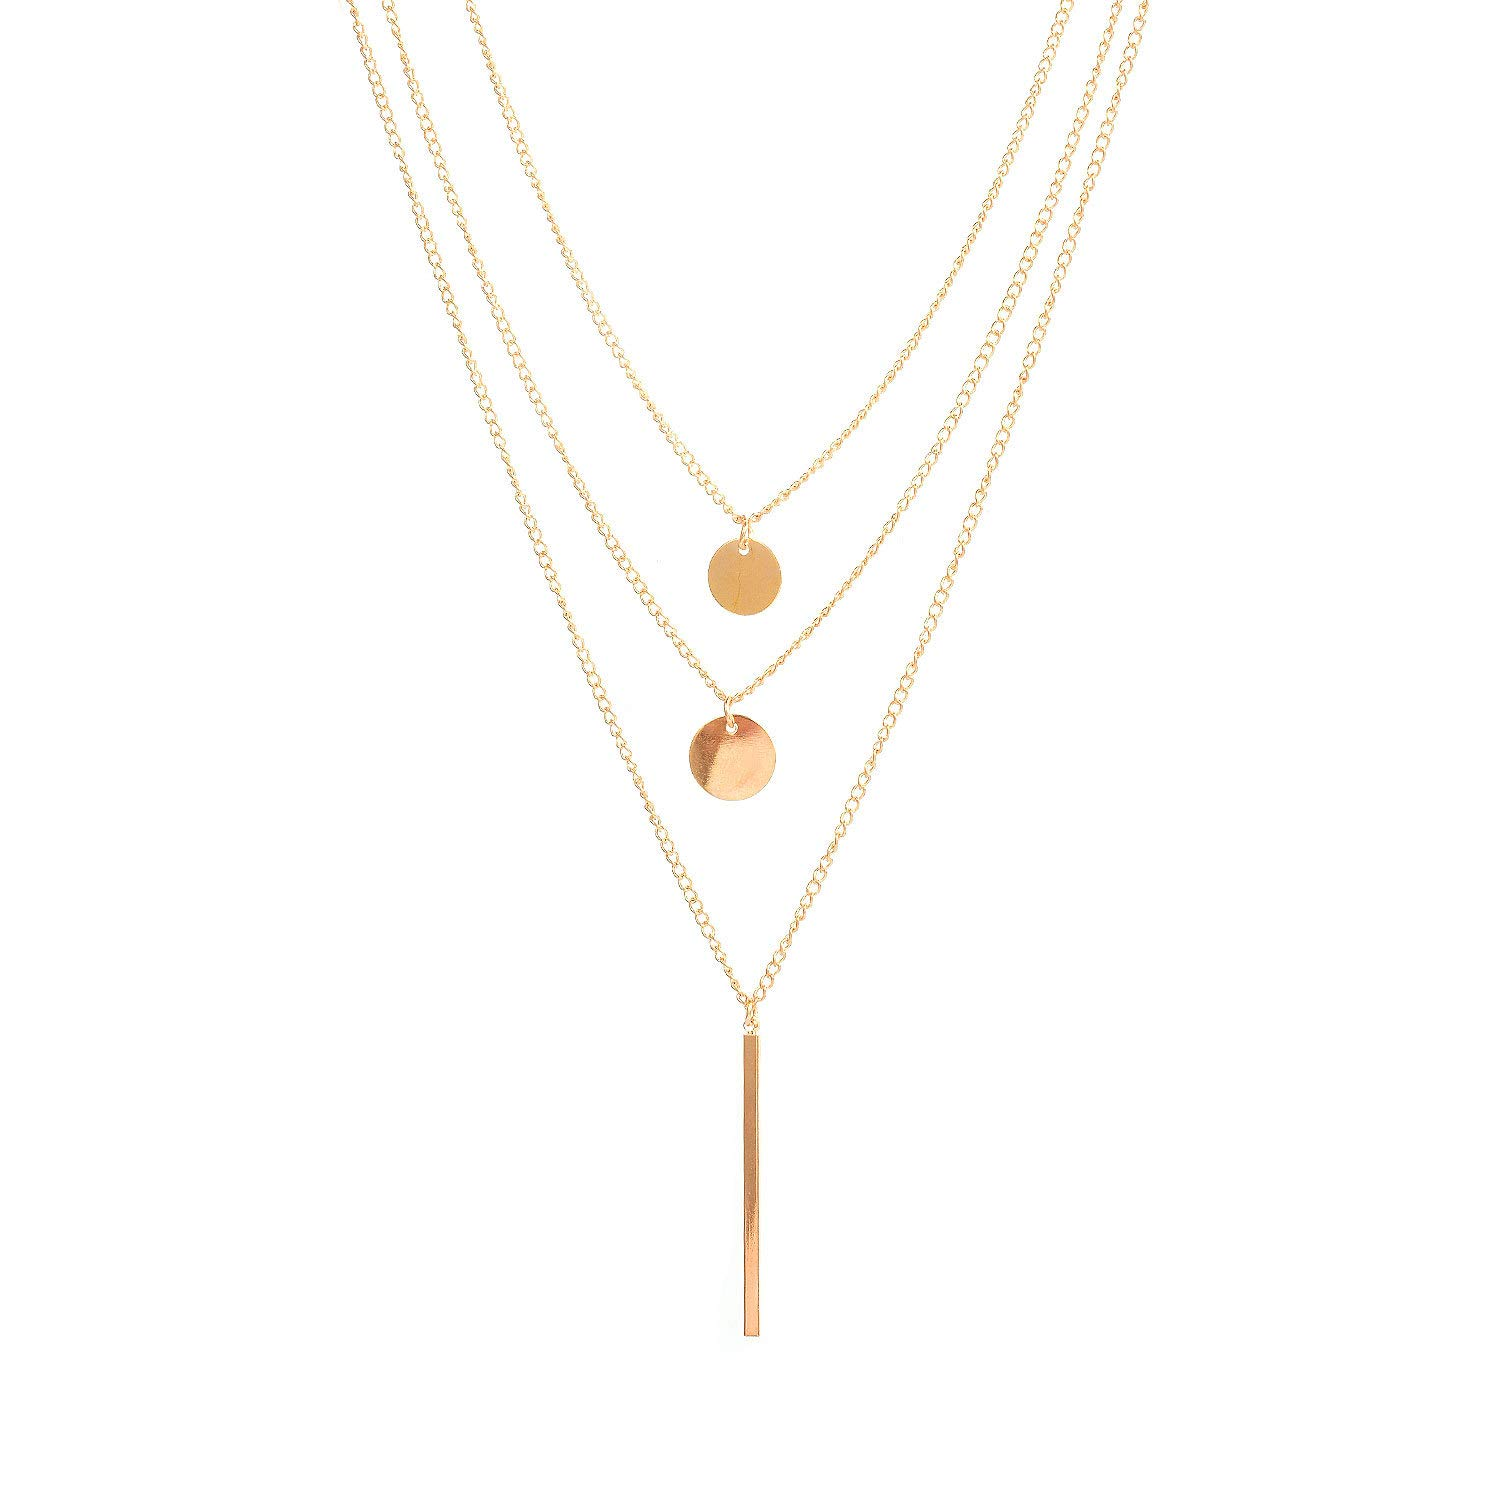 Geroki Sequin Layered Necklace Bar Pendant Necklaces Coin Choker Necklace Chain Jewelry for Women and Girls(Gold)